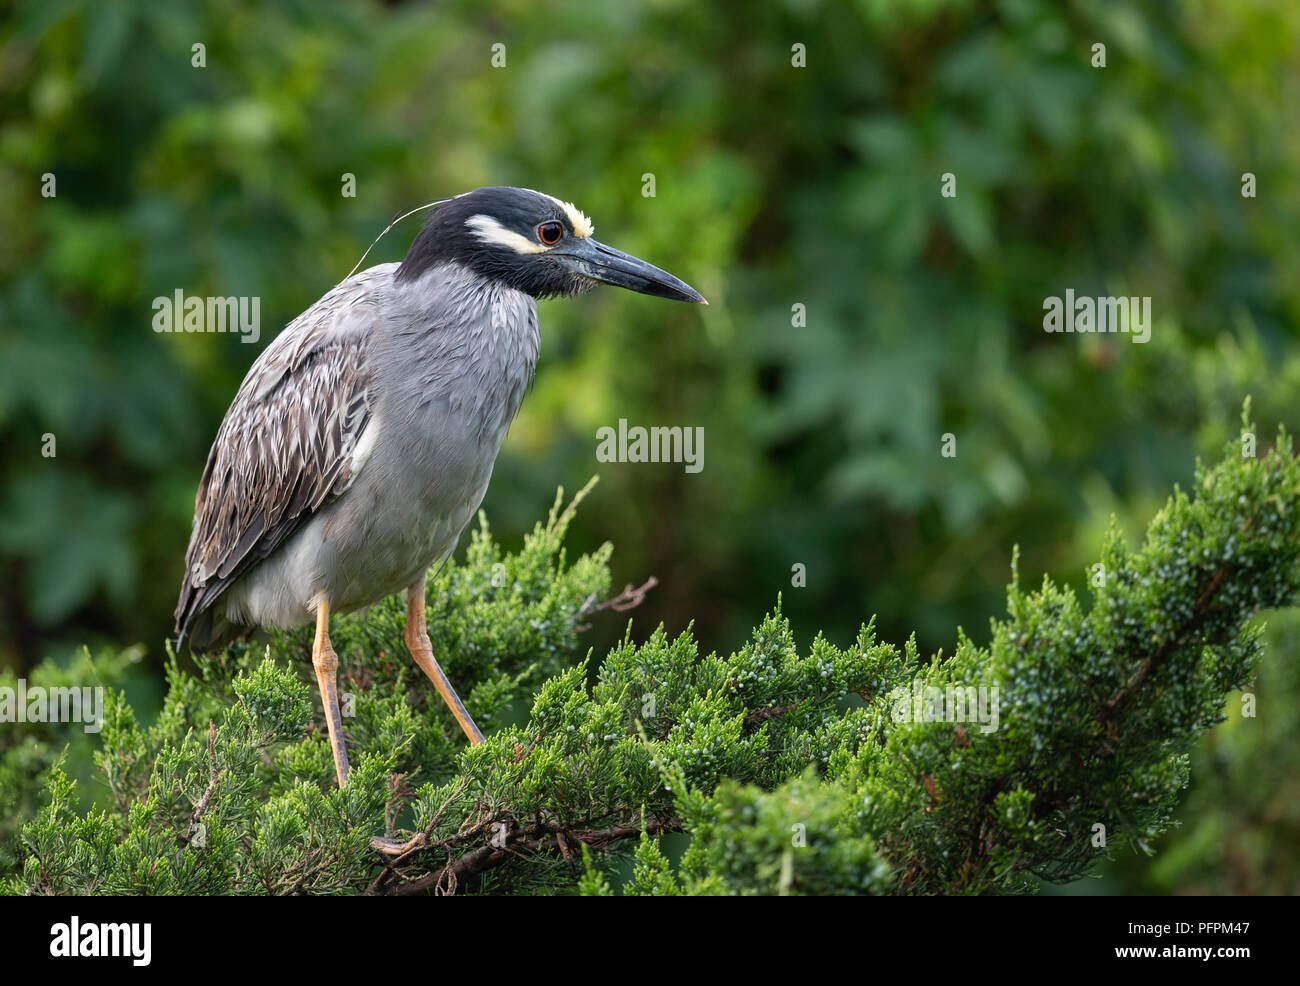 Yellow Crowned Night Heron - Stock Image